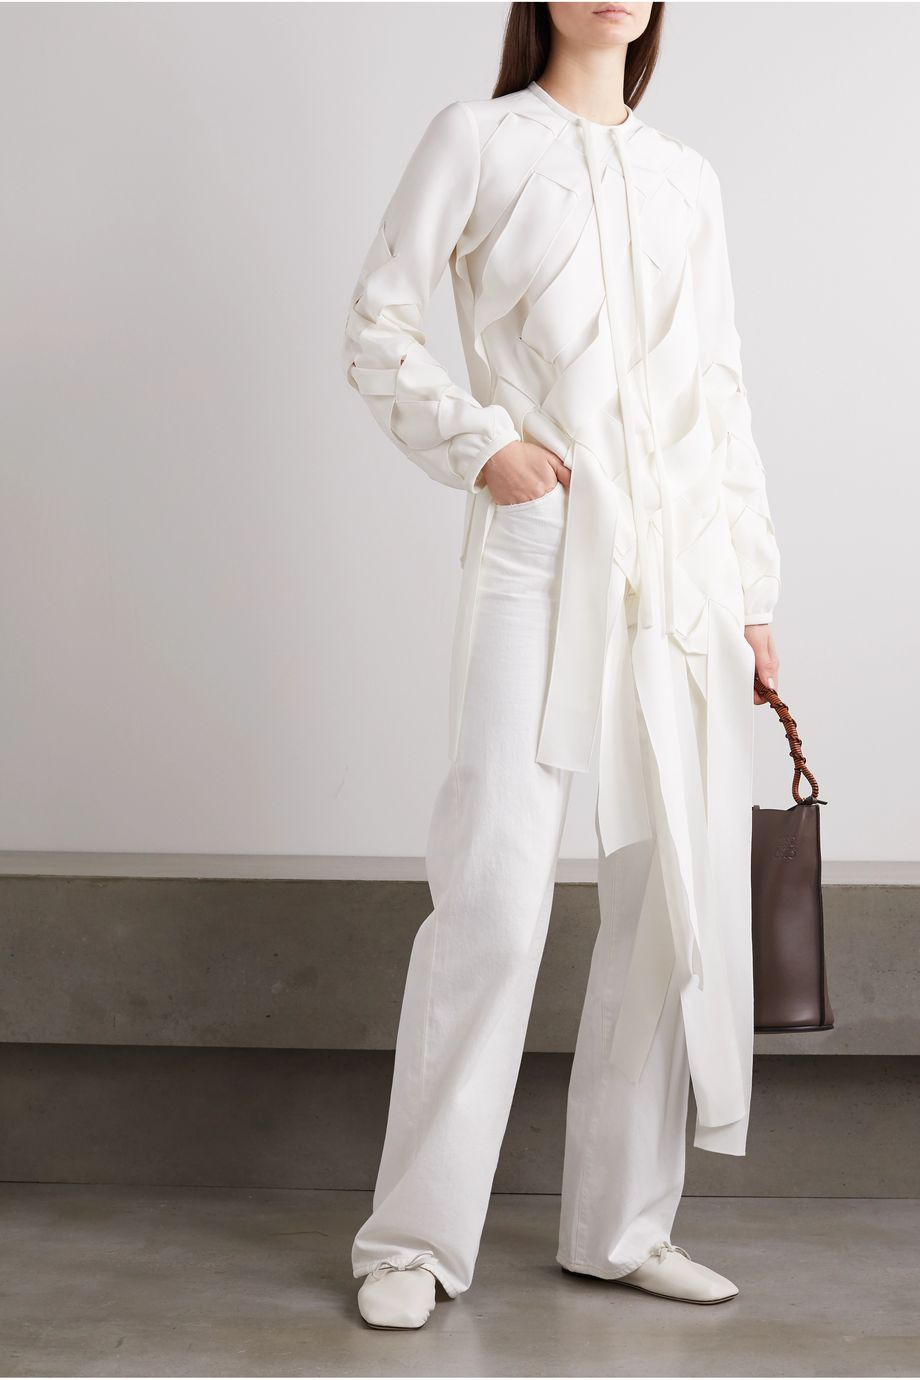 JW Anderson Woven jersey blouse